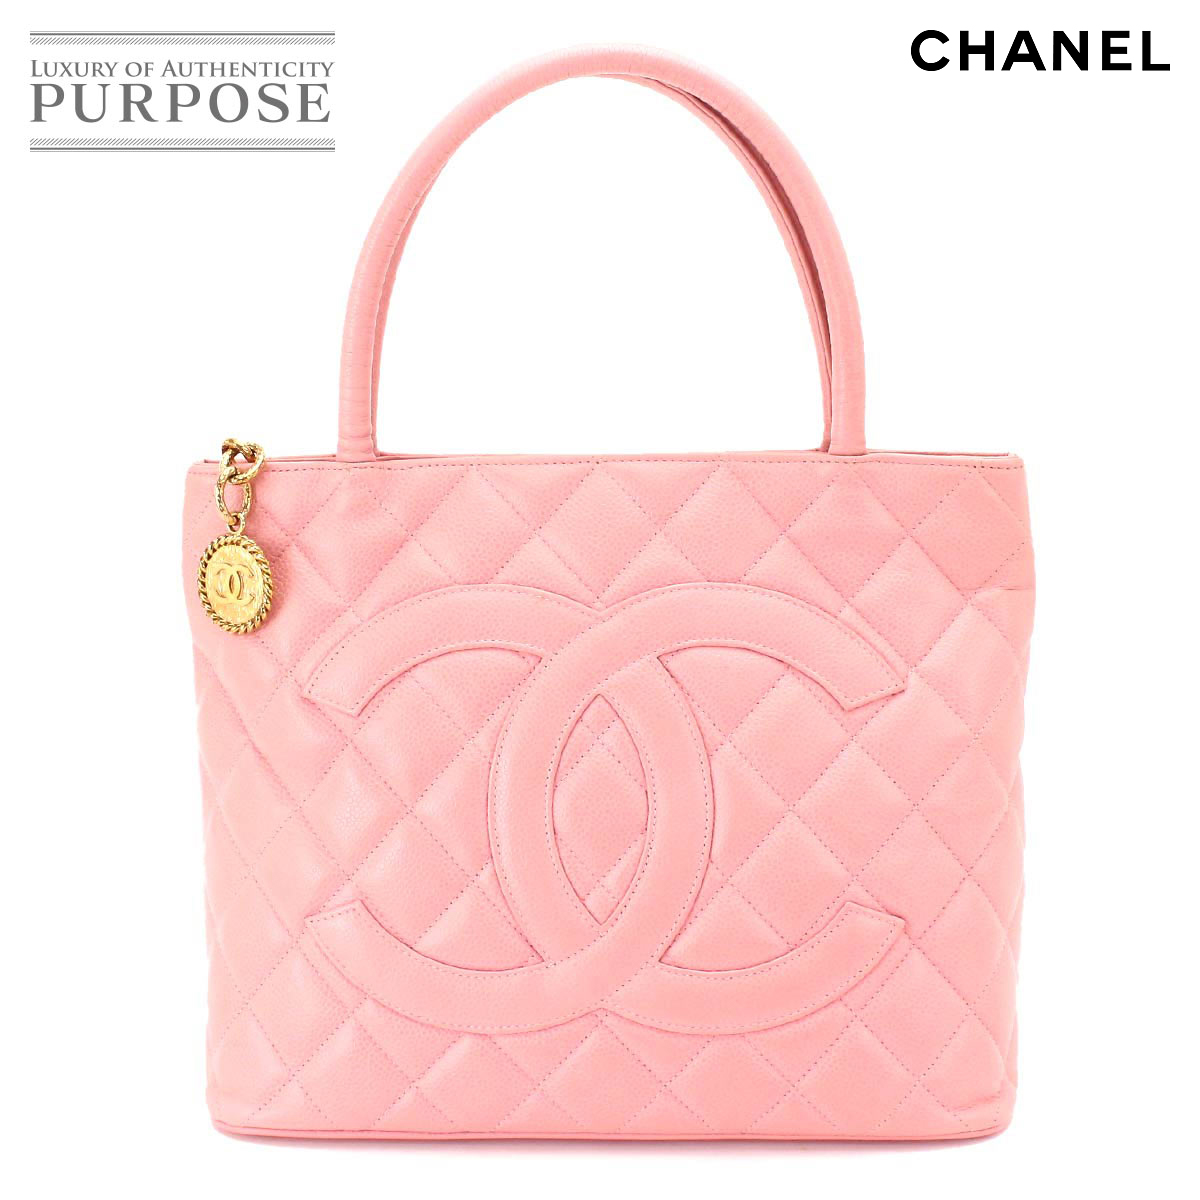 8a177e4a6a10b7 Chanel CHANEL caviar skin reproduction tote bag leather pink A01804 gold  metal fittings [used] brand